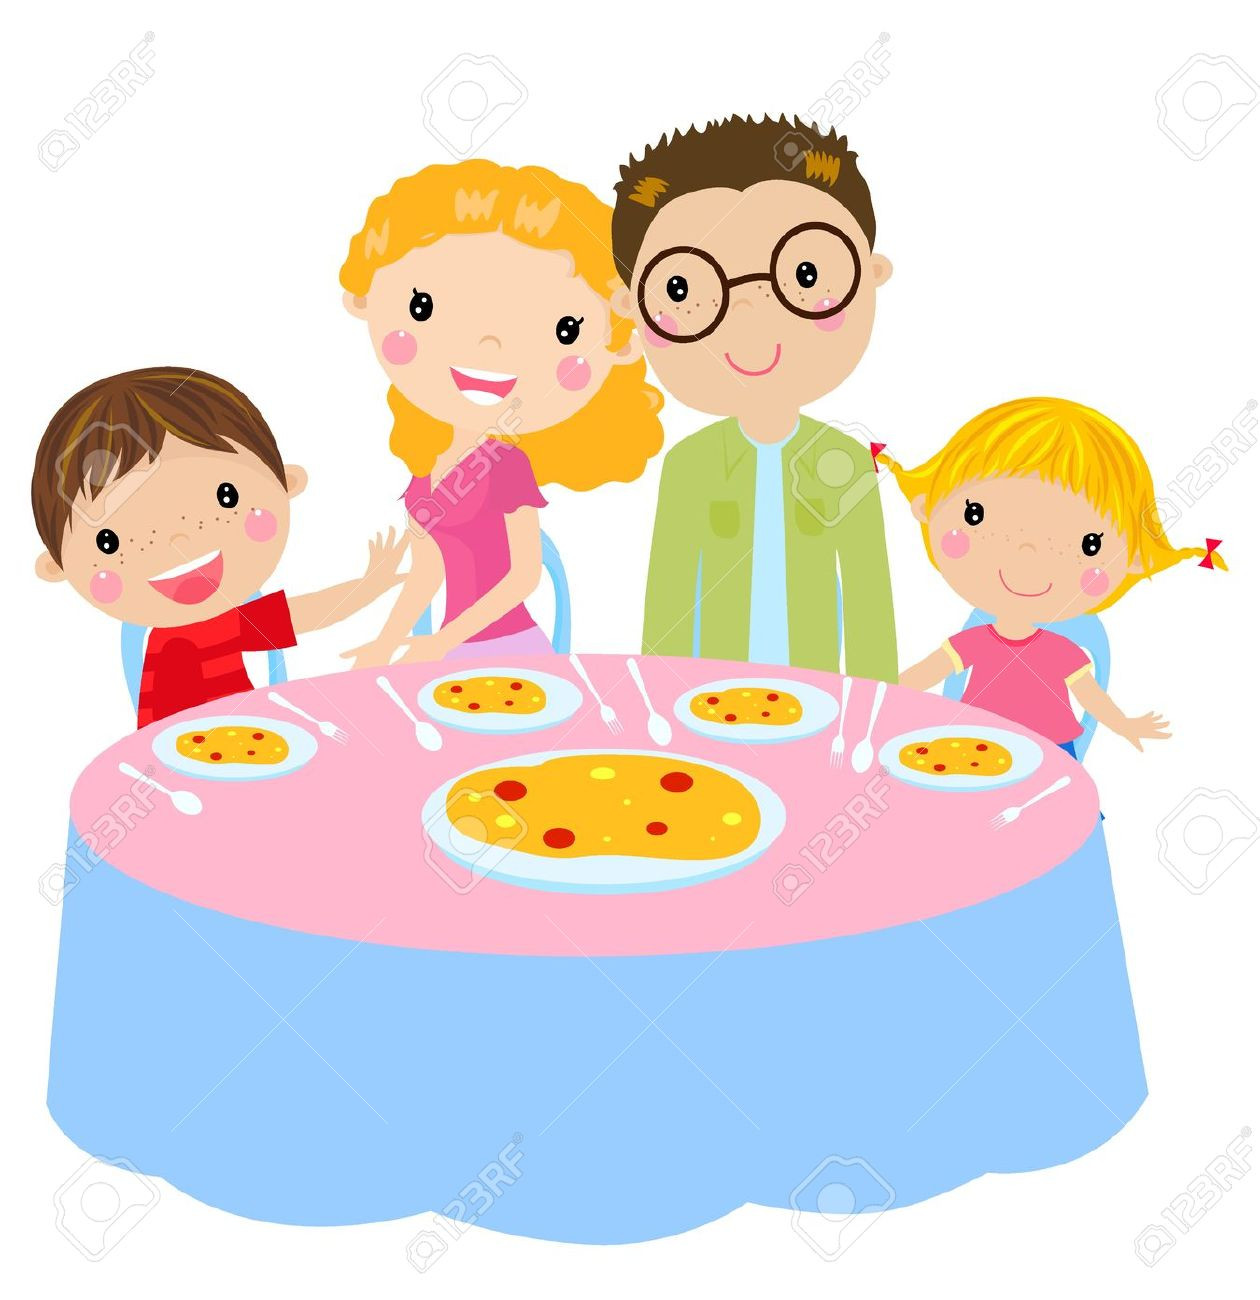 Eating Dinner Clipart  Lunch clipart family lunch Pencil and in color lunch